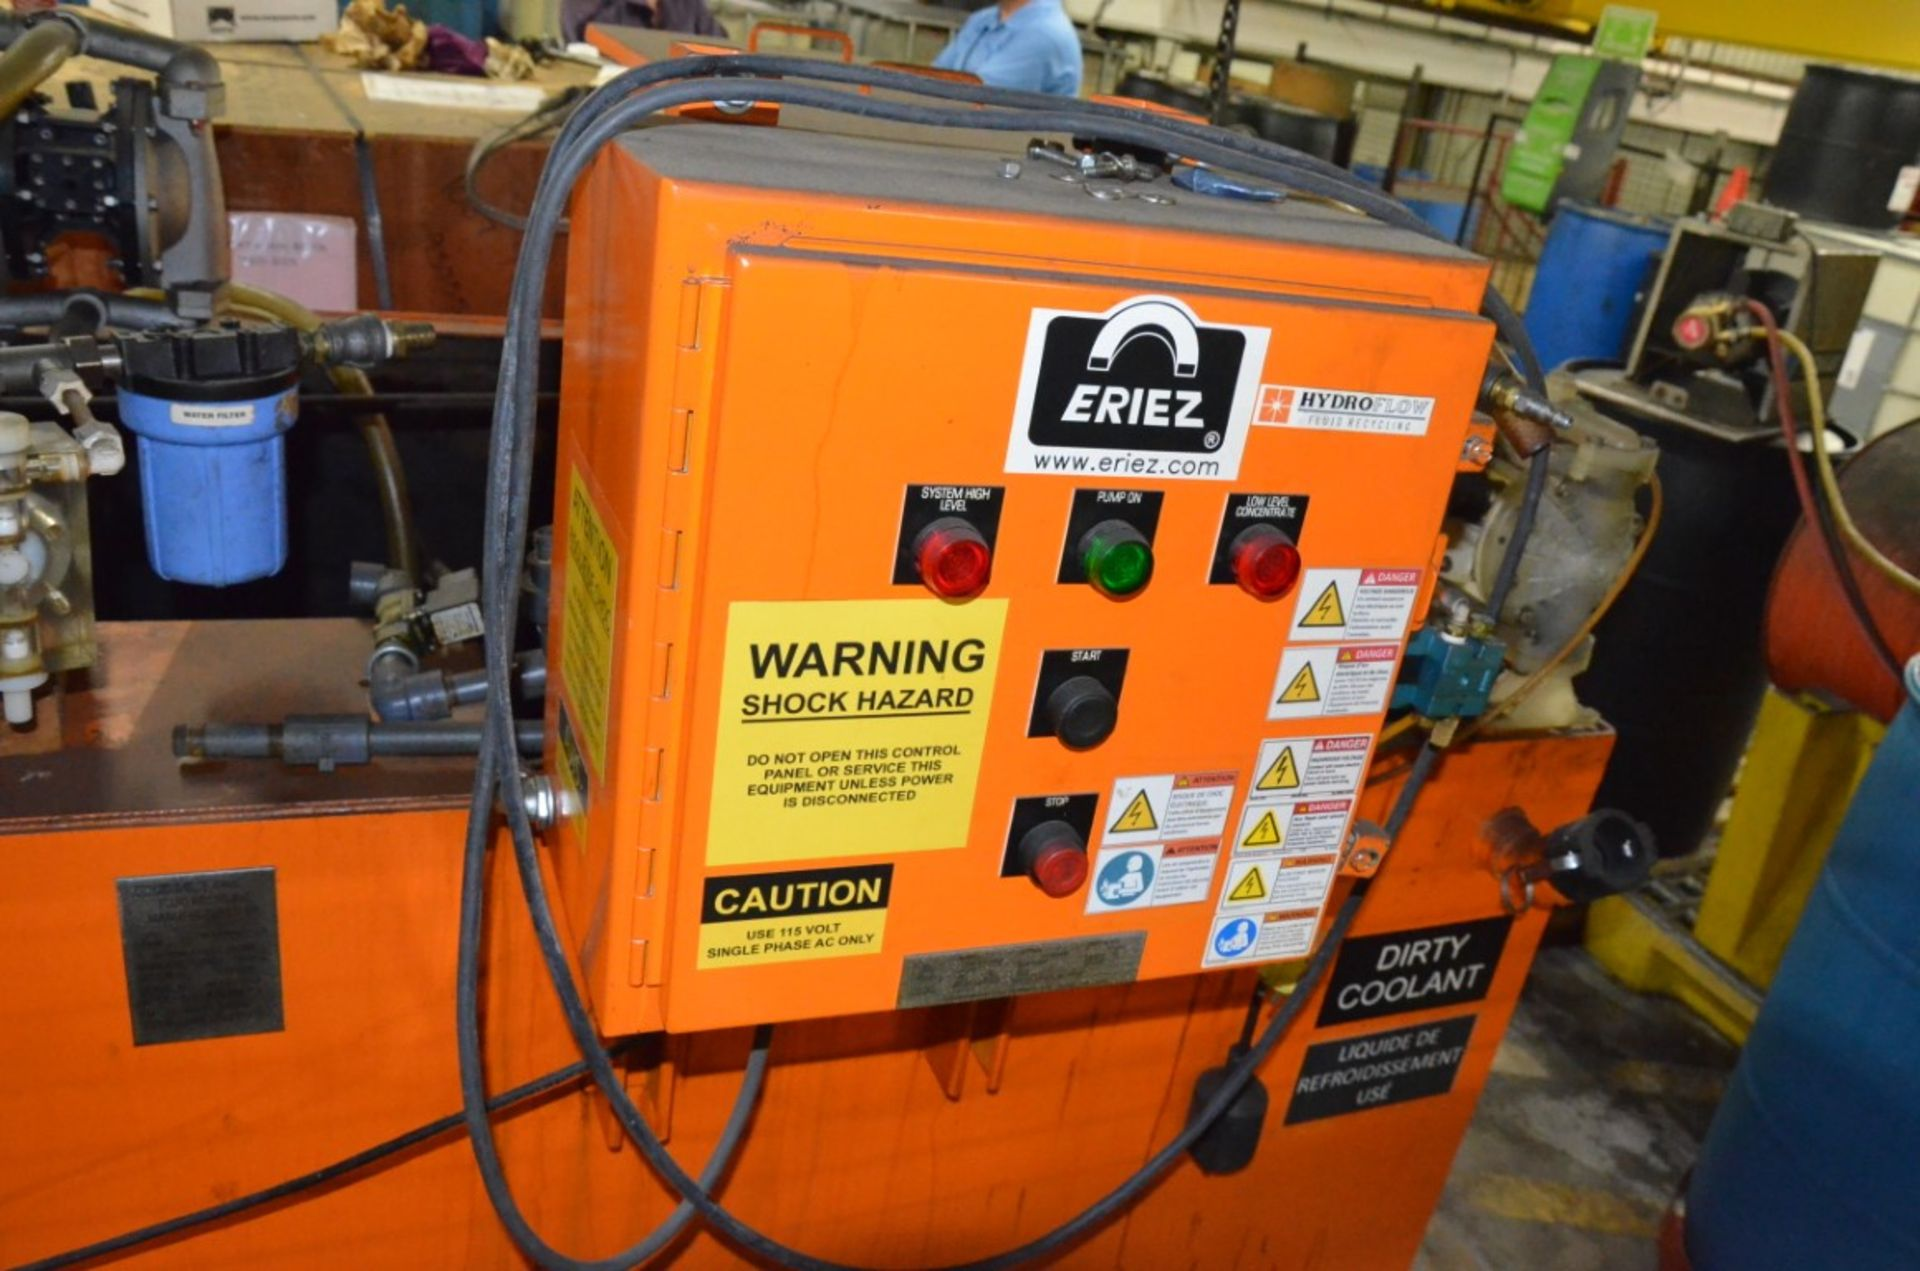 ERIEZ 120 SS MAGNETIC FILTRATION SYSTEM, S/N N/A - Image 4 of 6